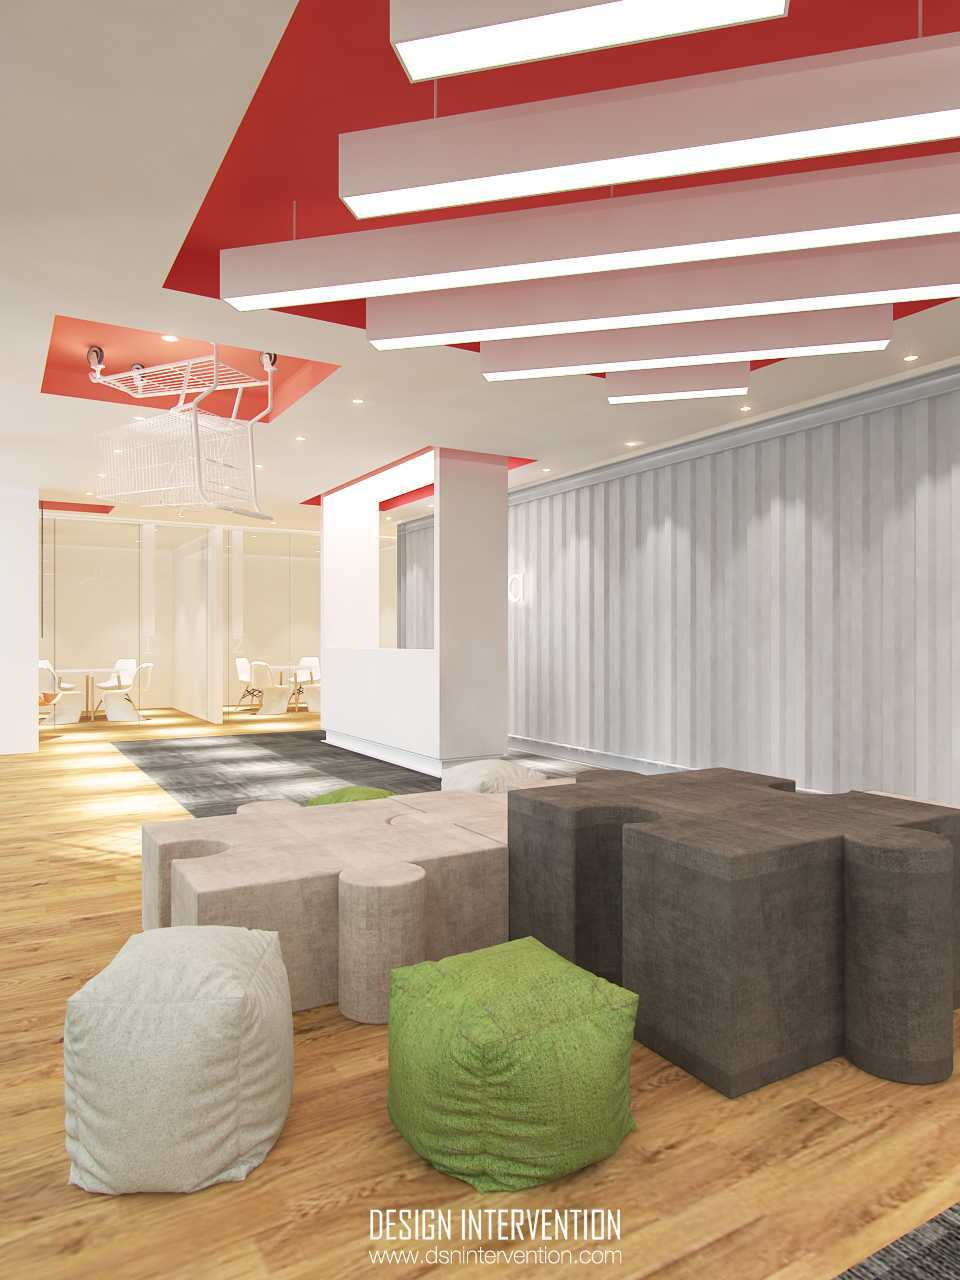 Design Intervention B - Office Concept Bsd Office Park Bsd Office Park Seating Area  13968